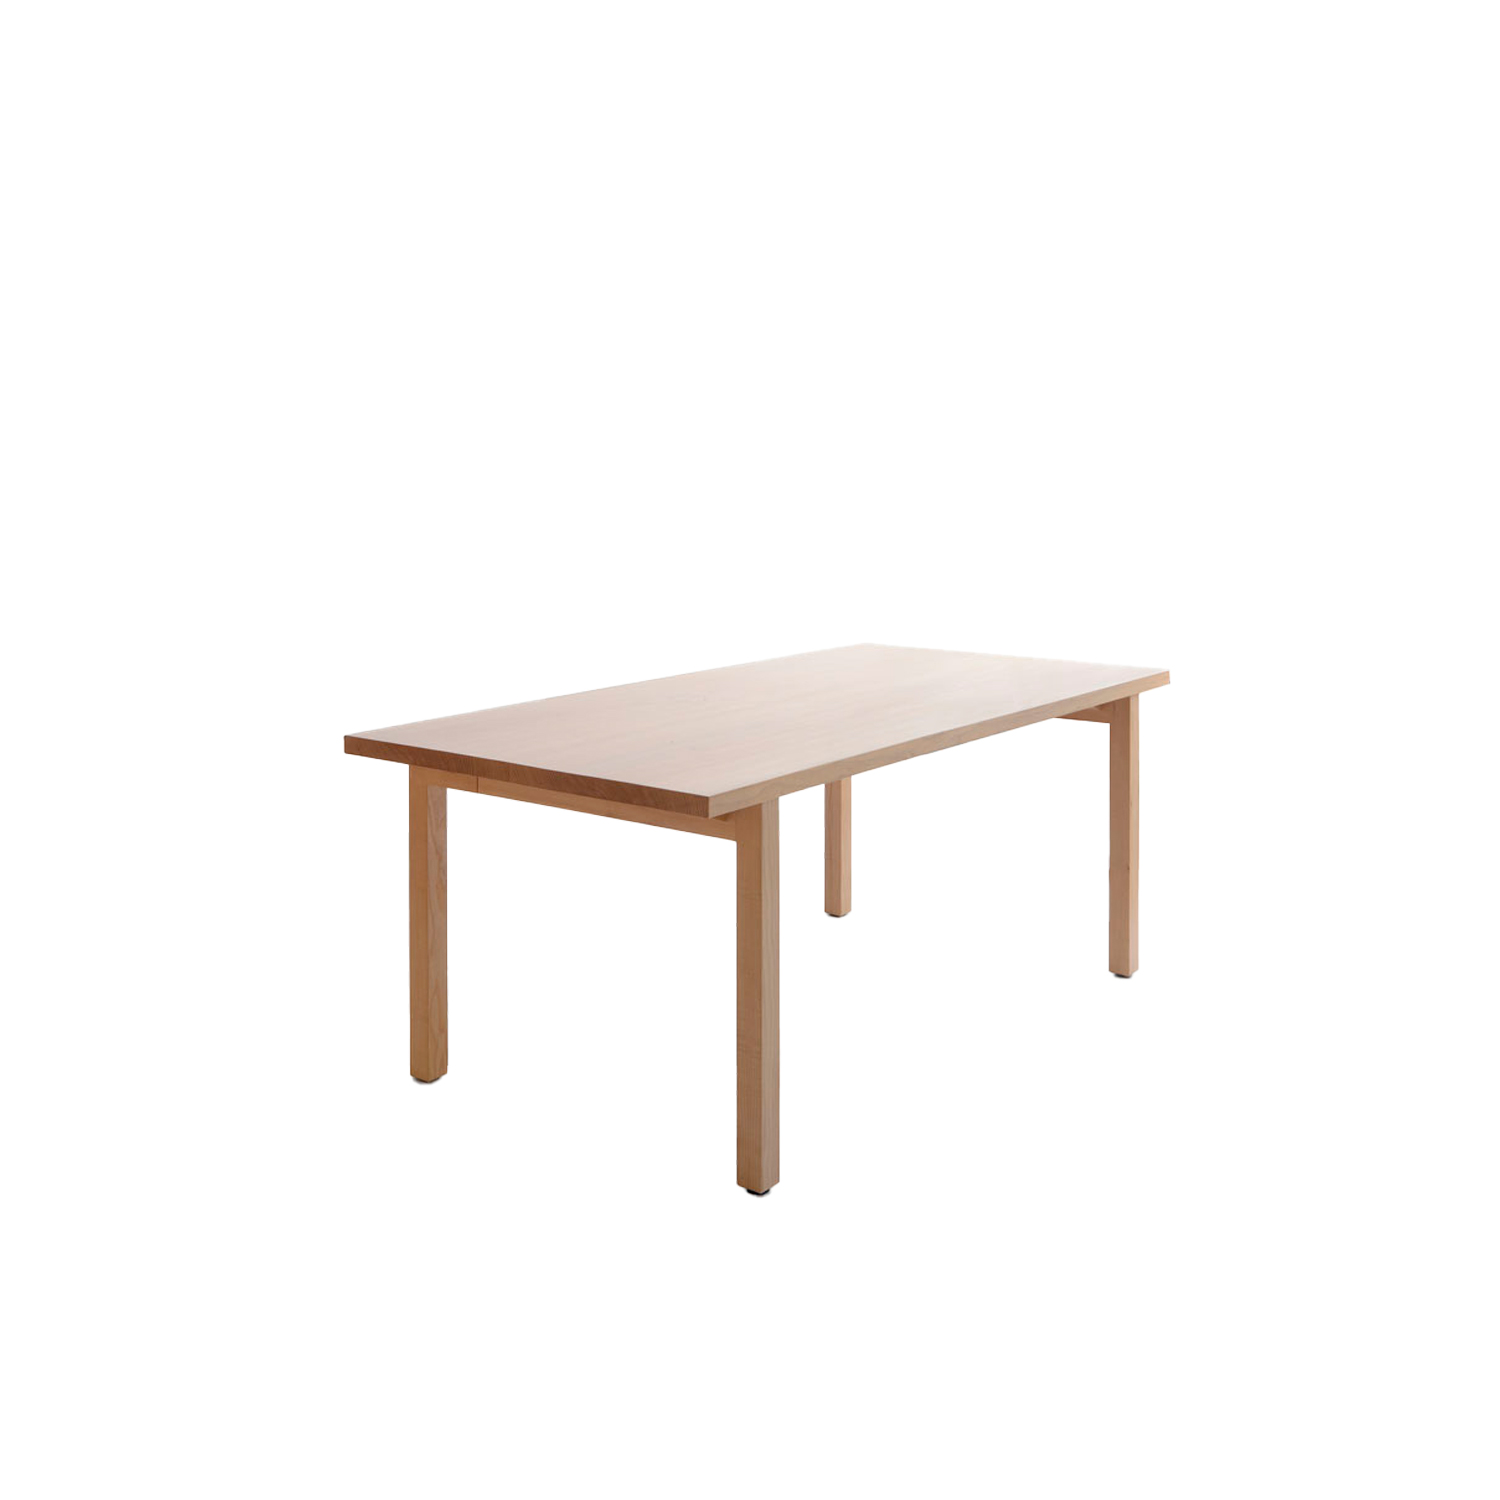 Periferia Table - The archetype table, Periferia, is a timeless solid wooden table that will last from father to son and longer. Due to its understated forms, one can select whichever chair to accompany it.  Periferia table is available in birch, ash, or oak with an oiled finish, and the table is available in two different sizes, and a bigger size table is also available upon request. Cable tray and solid wood flaps for tables are available at an additional price.  | Matter of Stuff